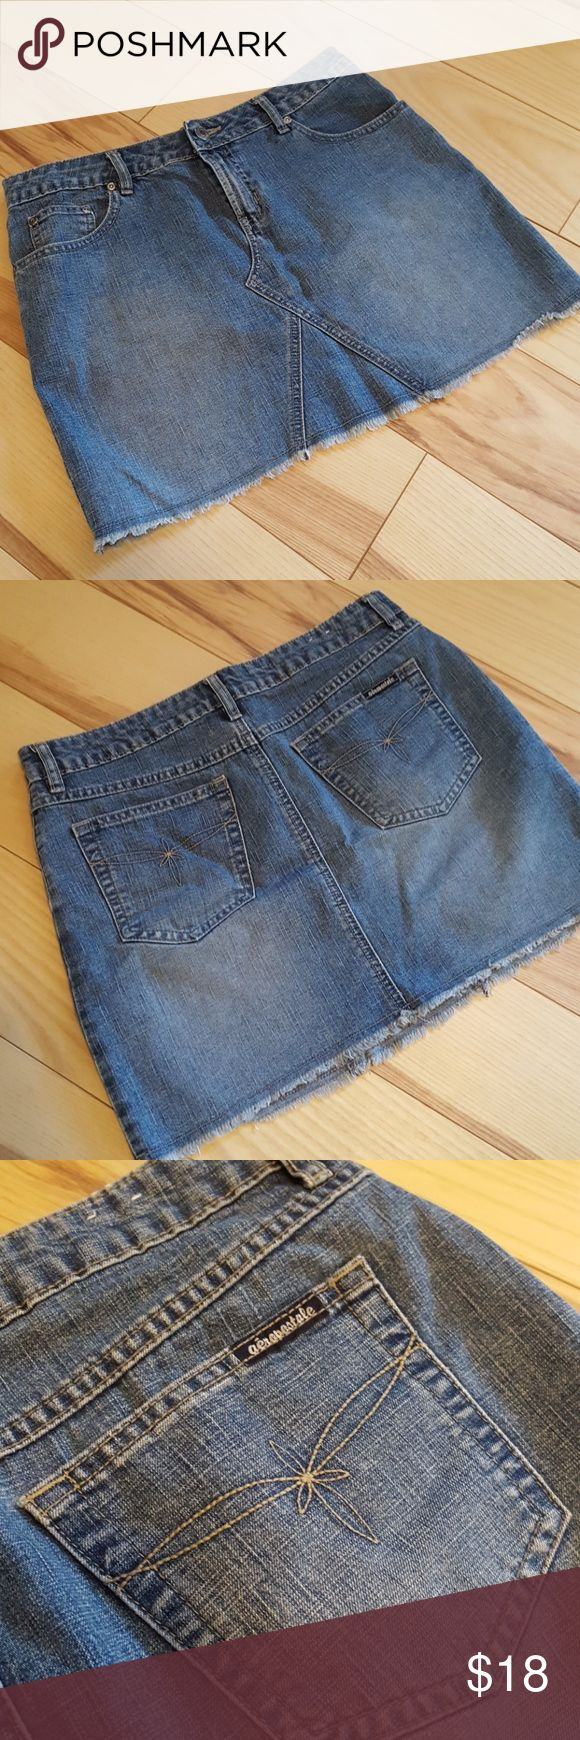 Denim mini skirt Aeropostale Denim mini skirt, size 3/4, small Aeropostale Skirts Mini